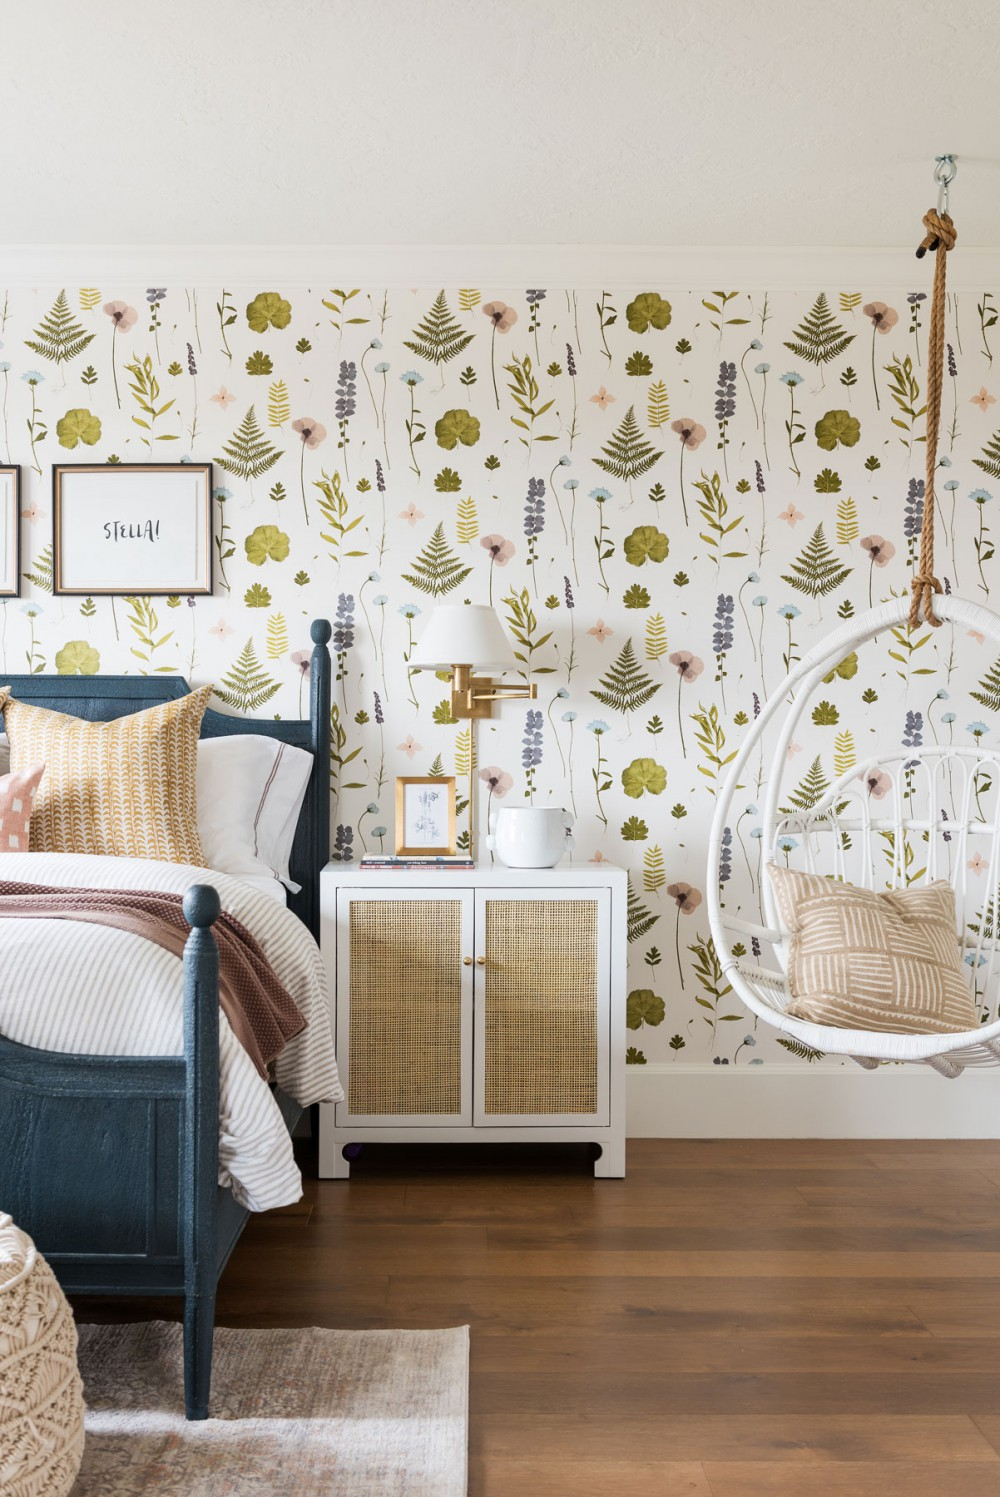 Colorful & Fun Bedroom Inspirations for Your Little Ones (2020 Ver.)